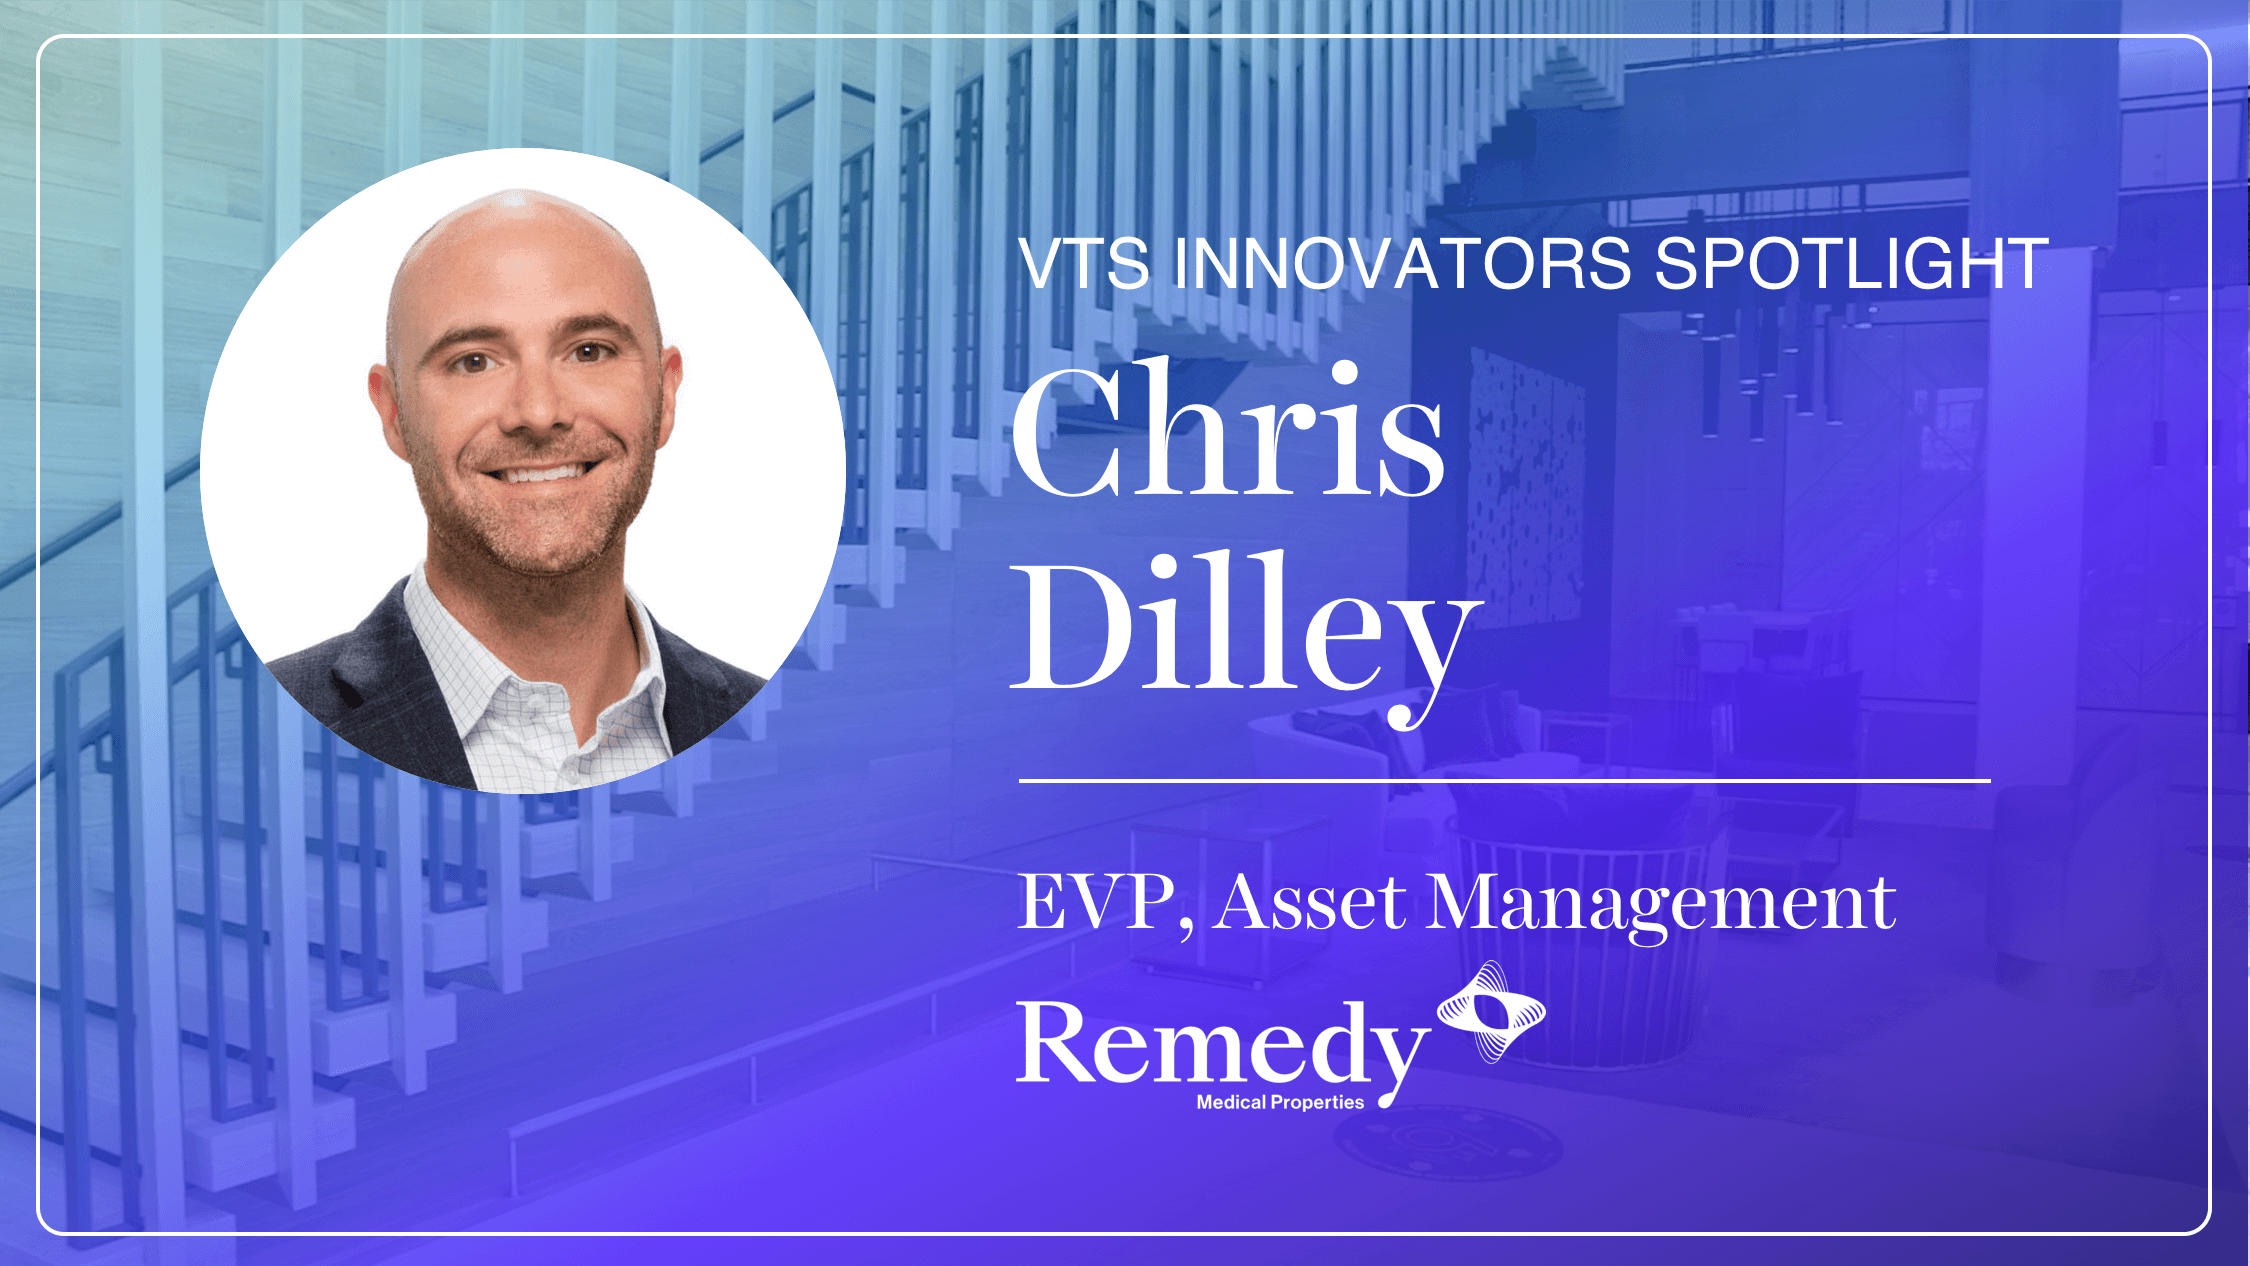 Chris Dilley, EVP Asset Management at Remedy Medical Properties, on the Need for Flexibility and Long-Term Partnerships with Tenants